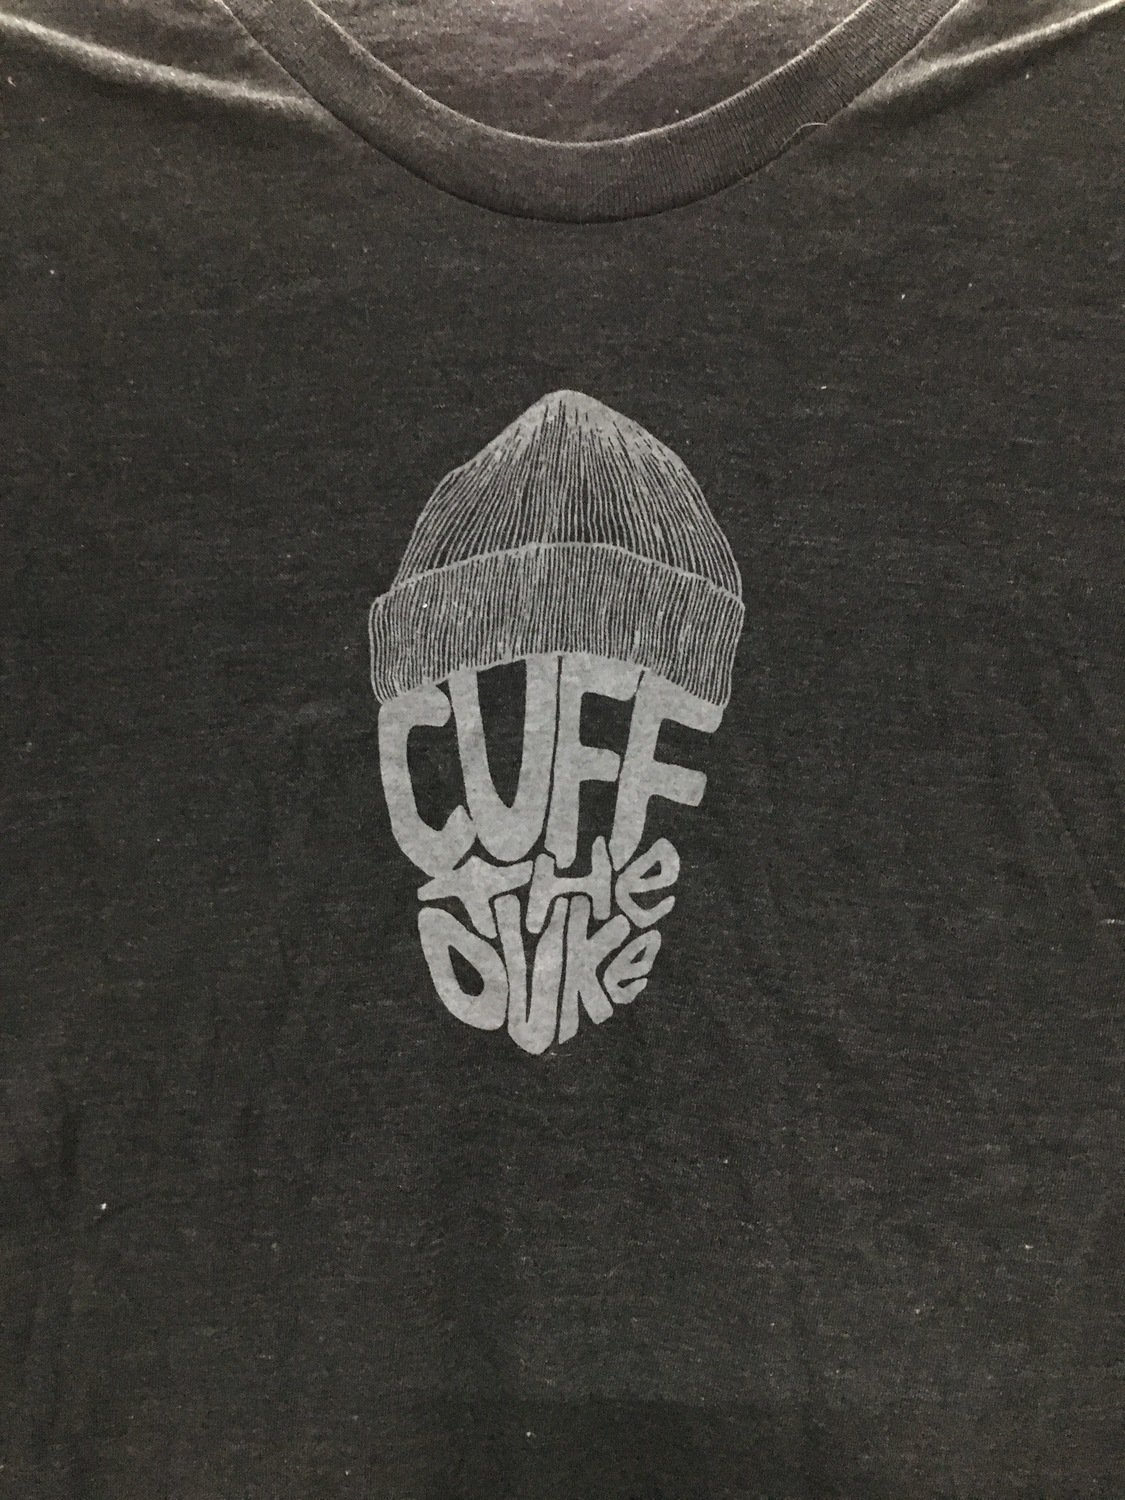 "Cuff The Duke ""Toque"" Women's T-Shirt (Heather Black)"